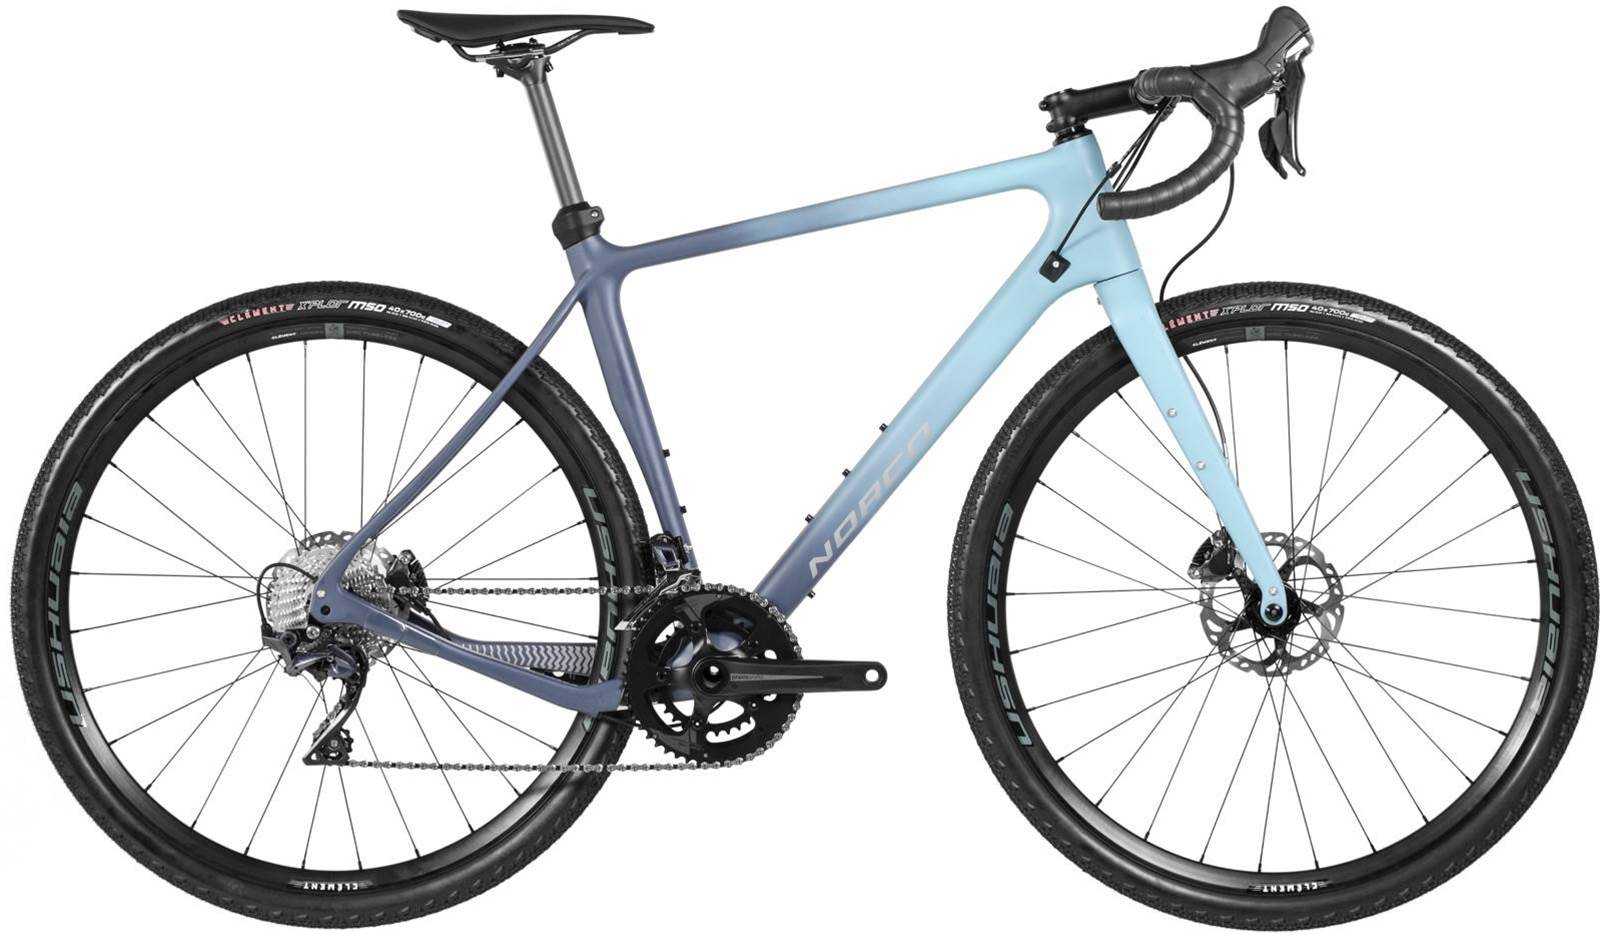 The all-new Norco Search XR